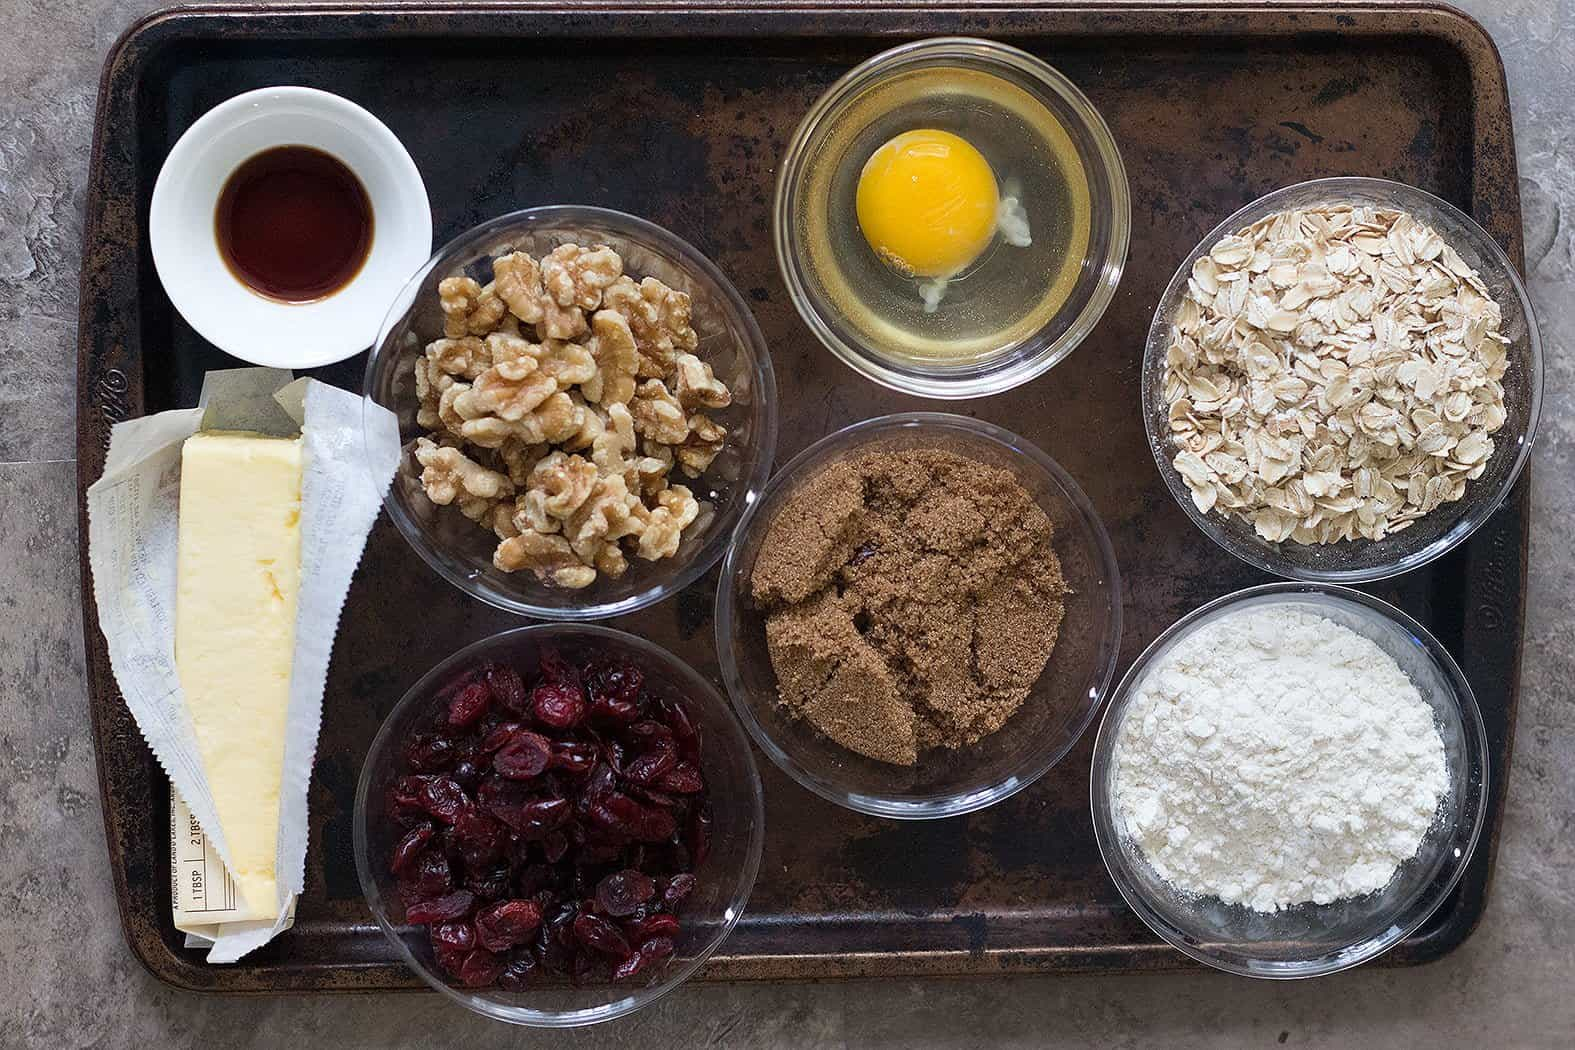 To make cranberry walnut oatmeal cookies you need butter, sugar, brown sugar, egg, vanilla, oatmeal, flour, cranberries and walnuts.